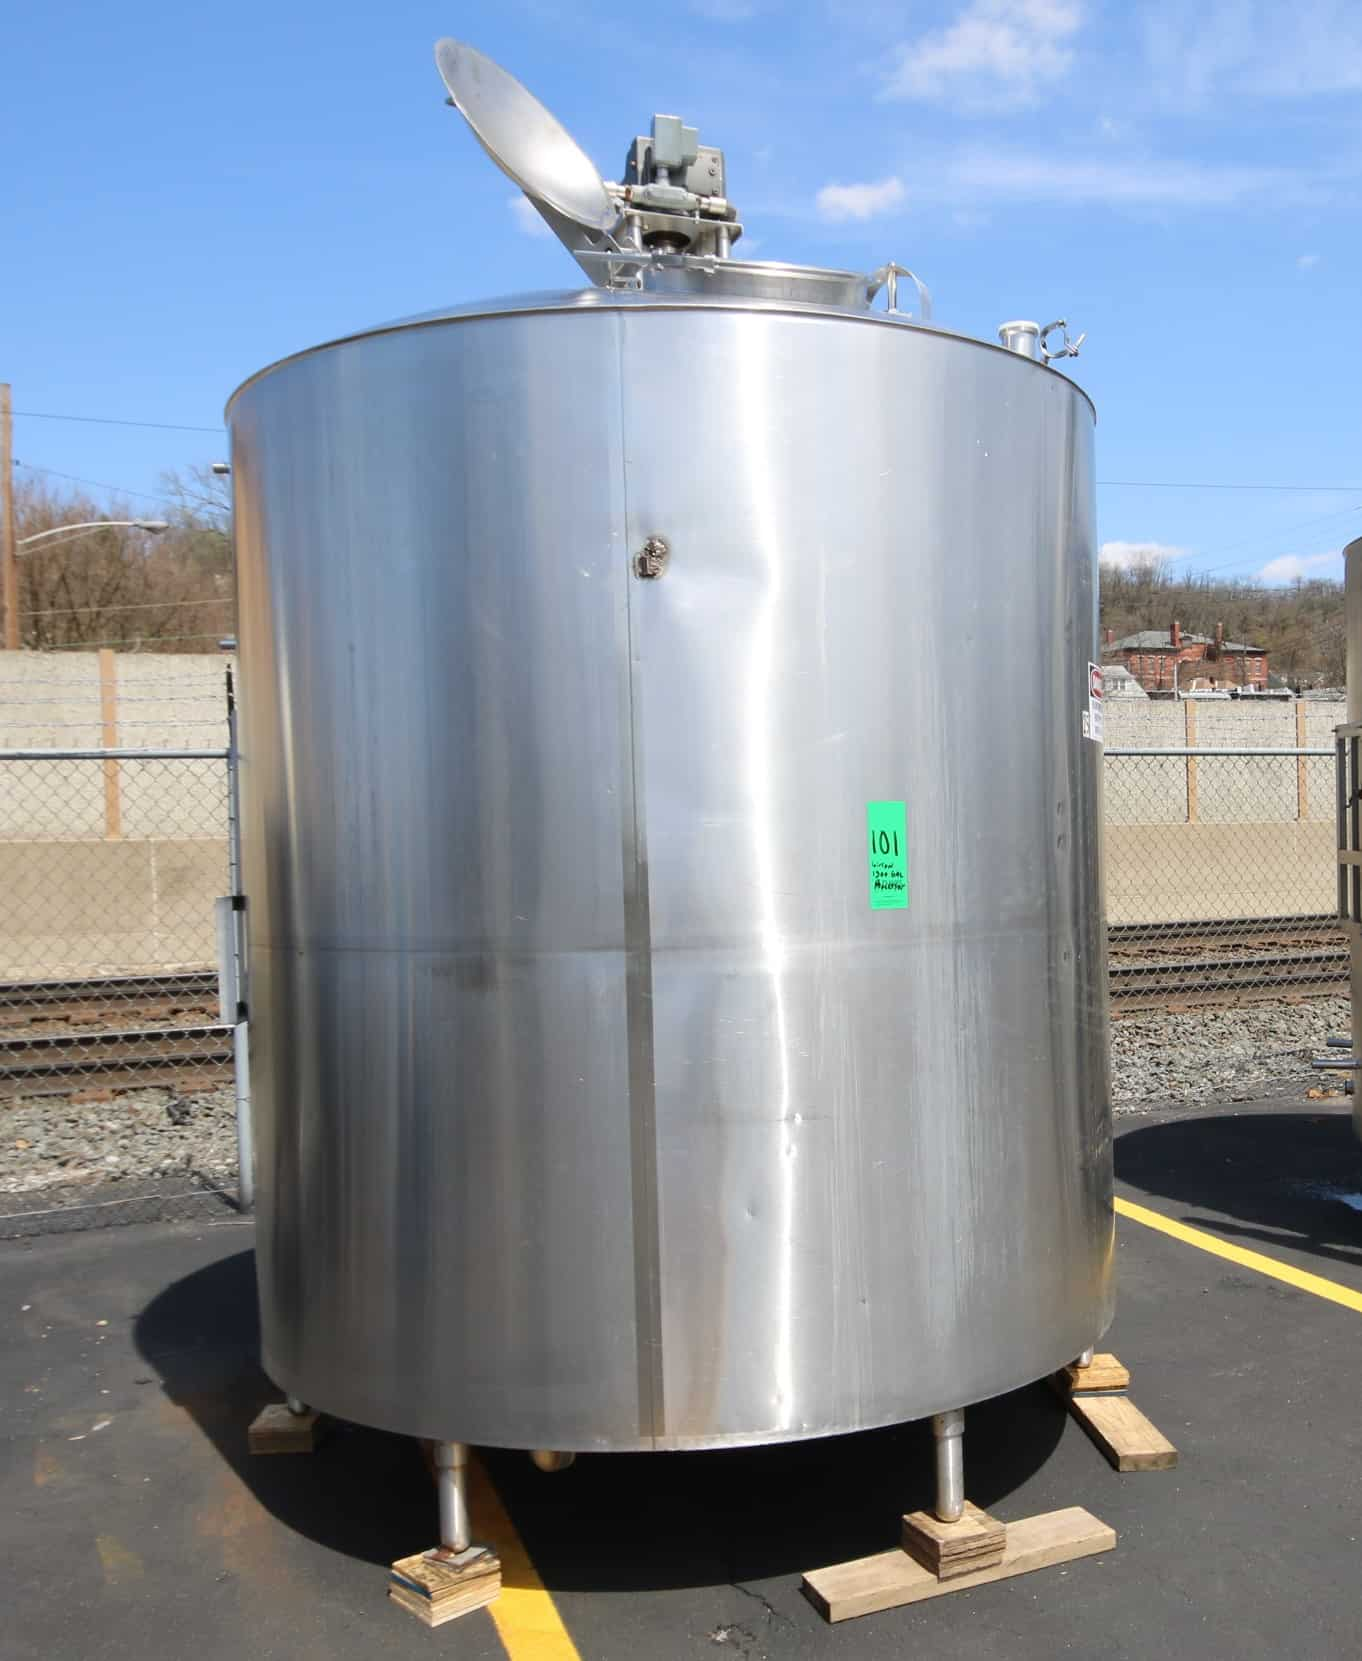 """Girton 1,500 Gal. Dome Top S/S Processor, S/N 72090505 with Bottom Sweep Agitator with 1 hp / 3/4 hp / 1225/1125 RPM, Dual Sprayball, Baffle, Top Mounted Man Door, S/S Bottom, WP 100 psi Jacket, 208/230/480V 3 Phase, (Aprox. Overall Diam. 125"""" H x 88"""" W)"""